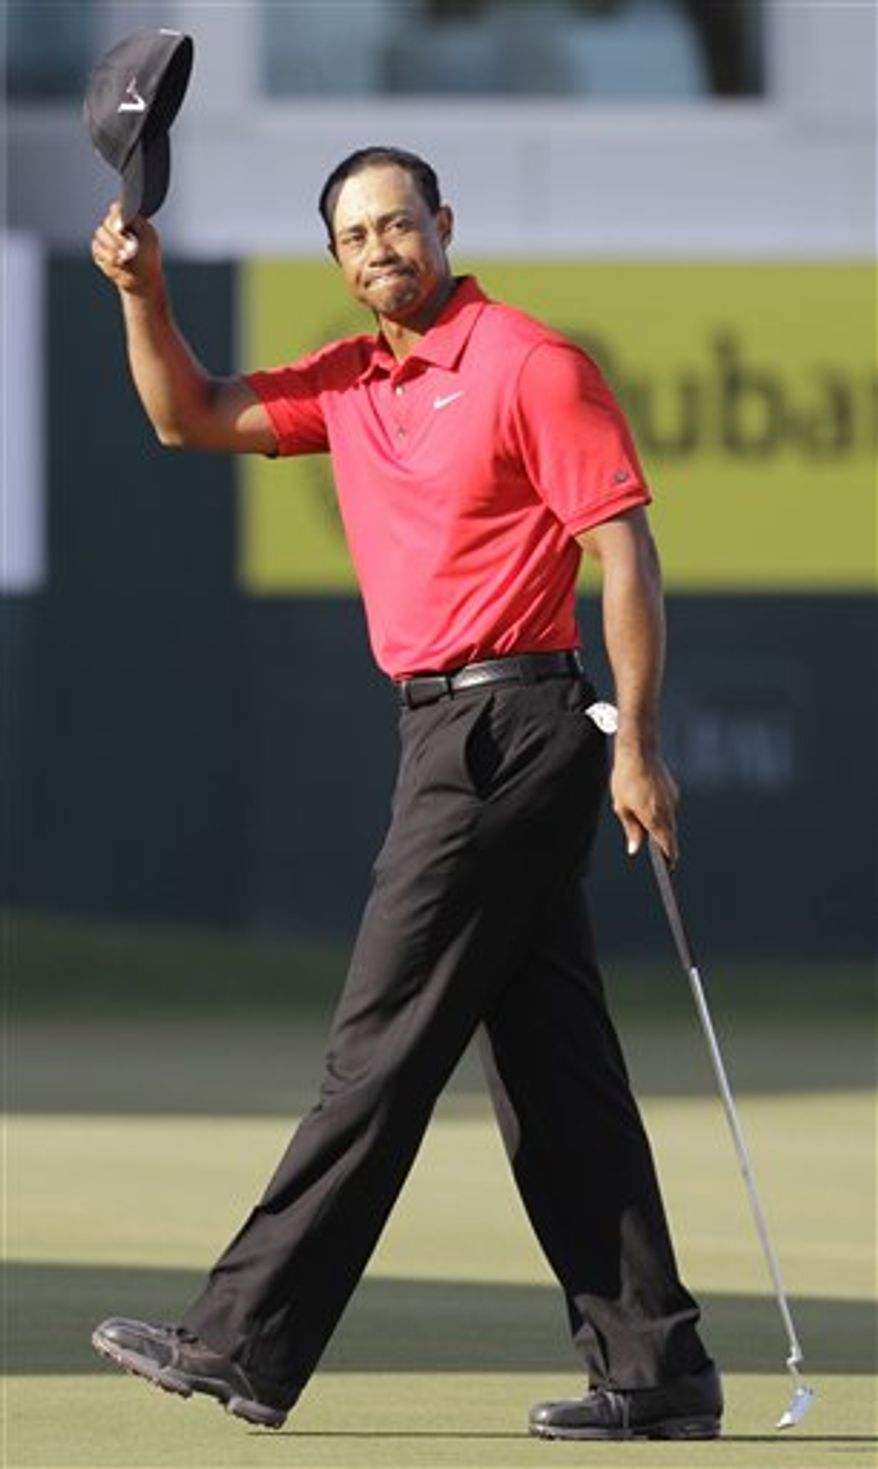 Tiger Woods from U.S. reacts after he finishes on the 18th hole during the final round of Dubai Desert Classic golf tournament at the Emirates Golf Club in Dubai, United Arab Emirates, Sunday Feb. 13, 2011. (AP Photo/Kamran Jebreili)